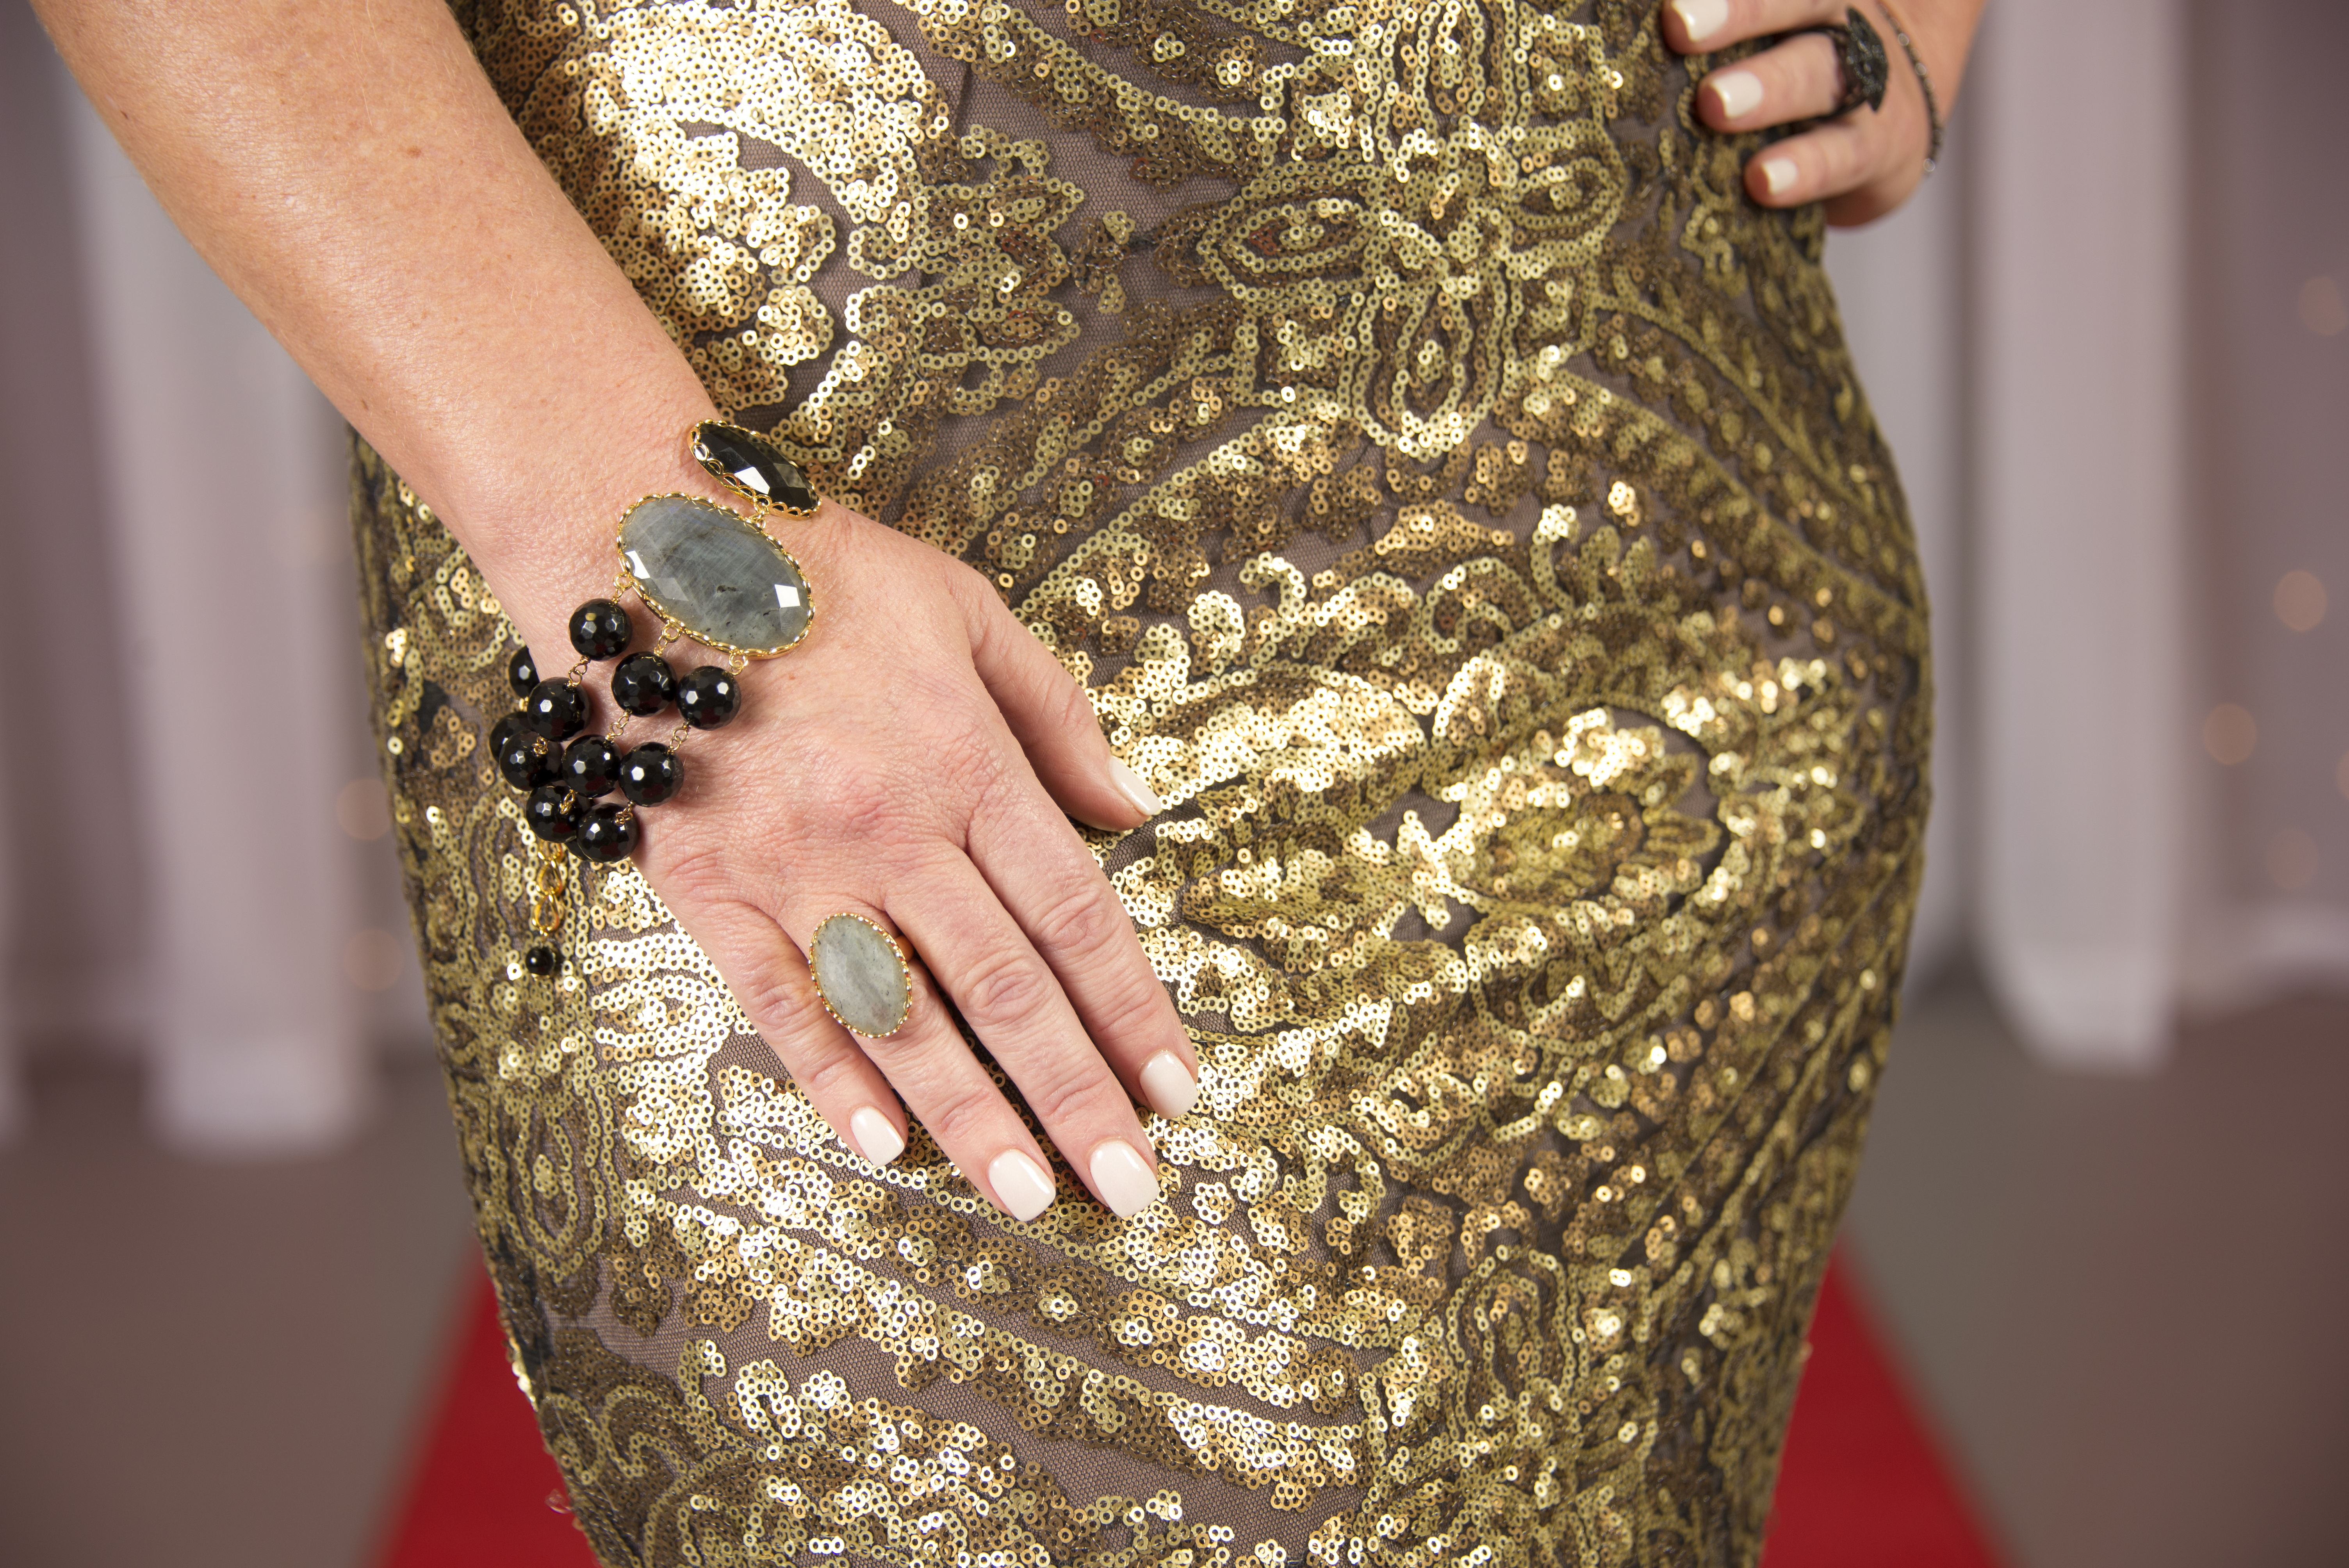 An Award Show Would Not Go Without Our Very Famous Diamond Simulant Line, Bella  Luce® The Black Rhodium Ring And Bracelet Were The Perfect Amount Of Bling